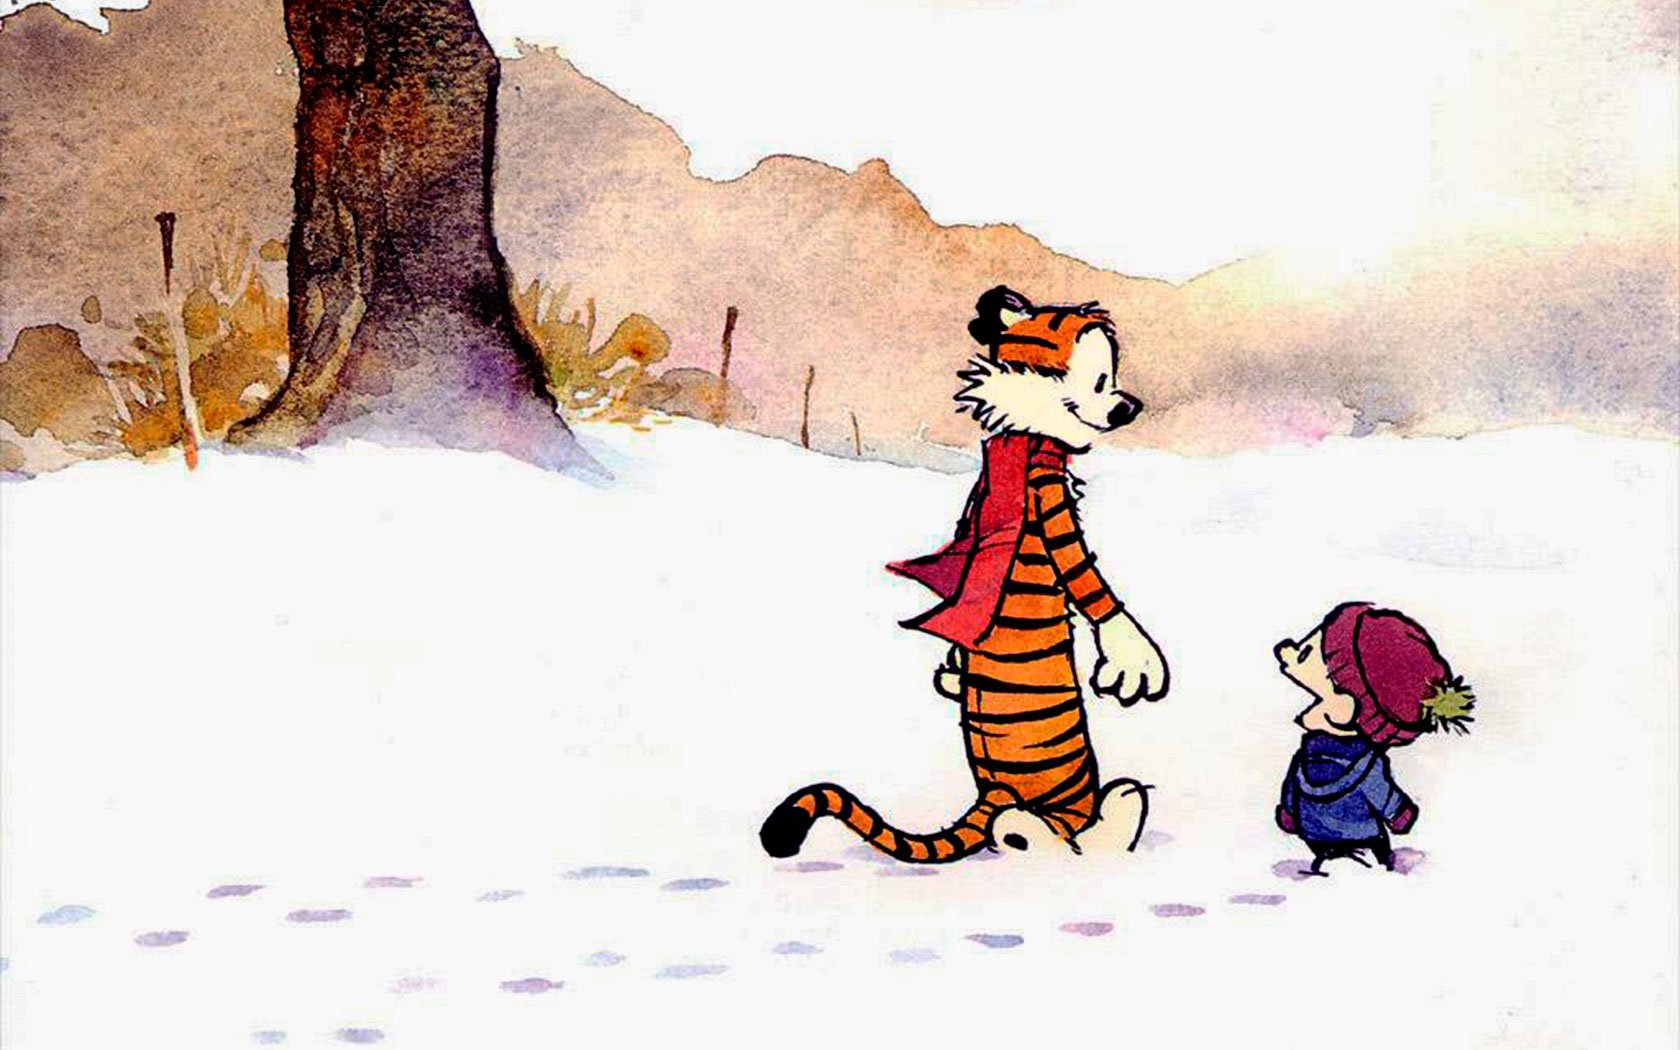 659x439px Wallpapers of Calvin And Hobbes HD 78 #1472812062